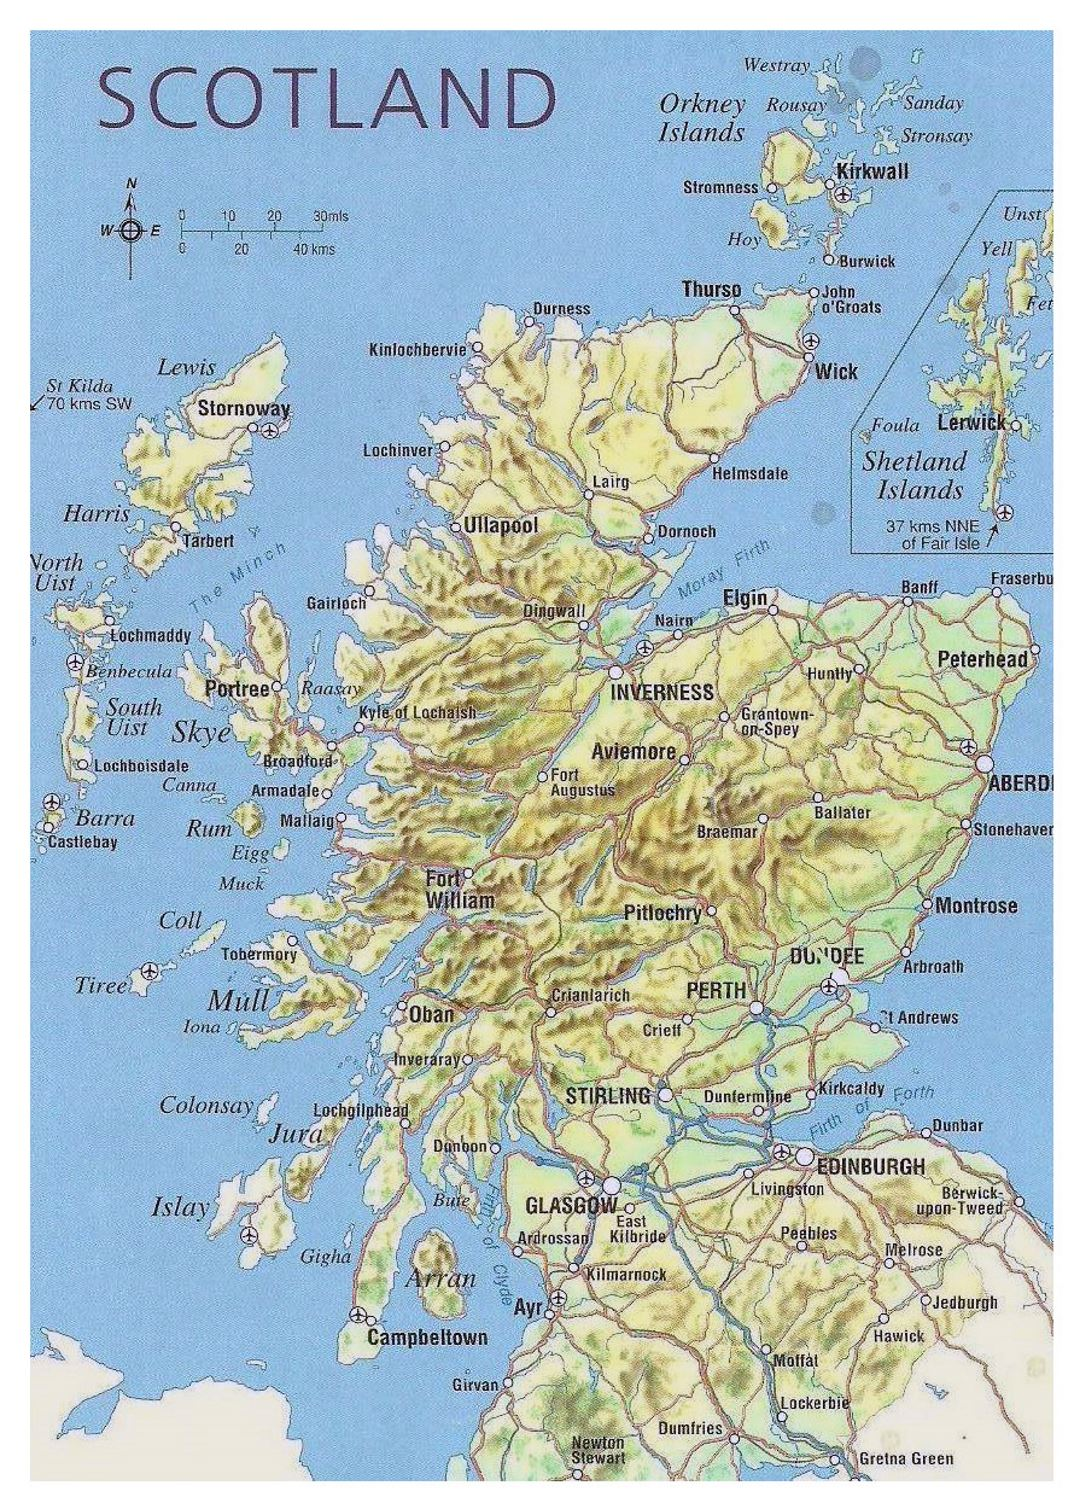 Map Of Scotland With Relief Roads Major Cities And Airports